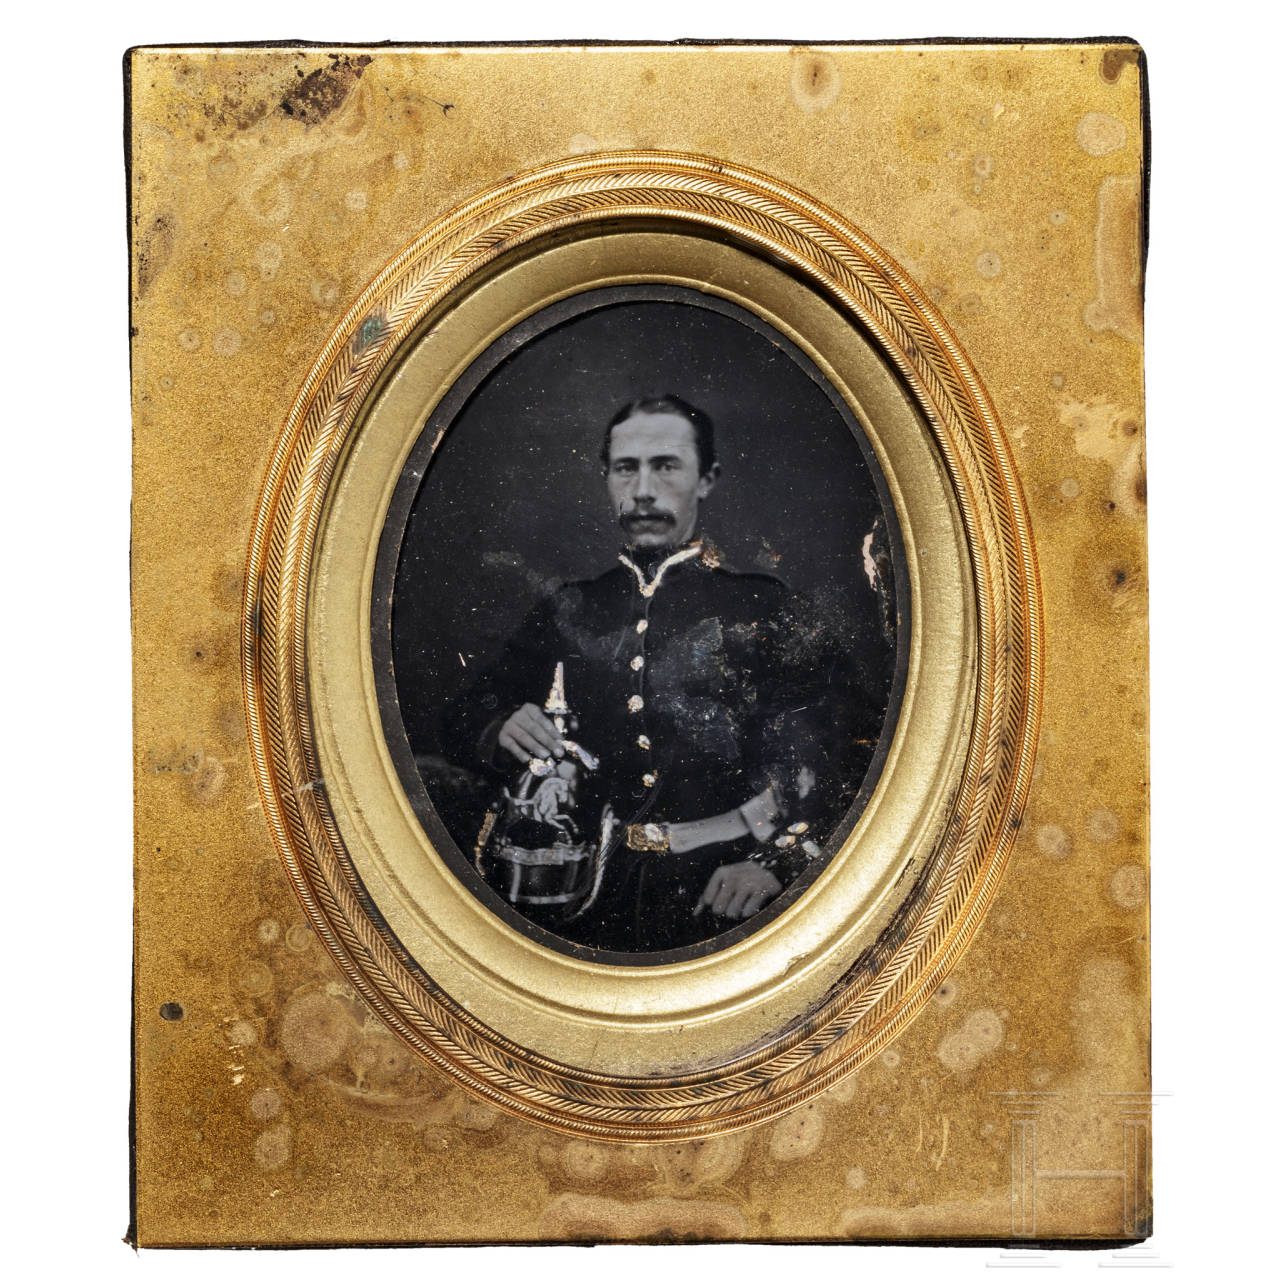 Daguerreotype of a Hanoverian soldier, mid 19th century